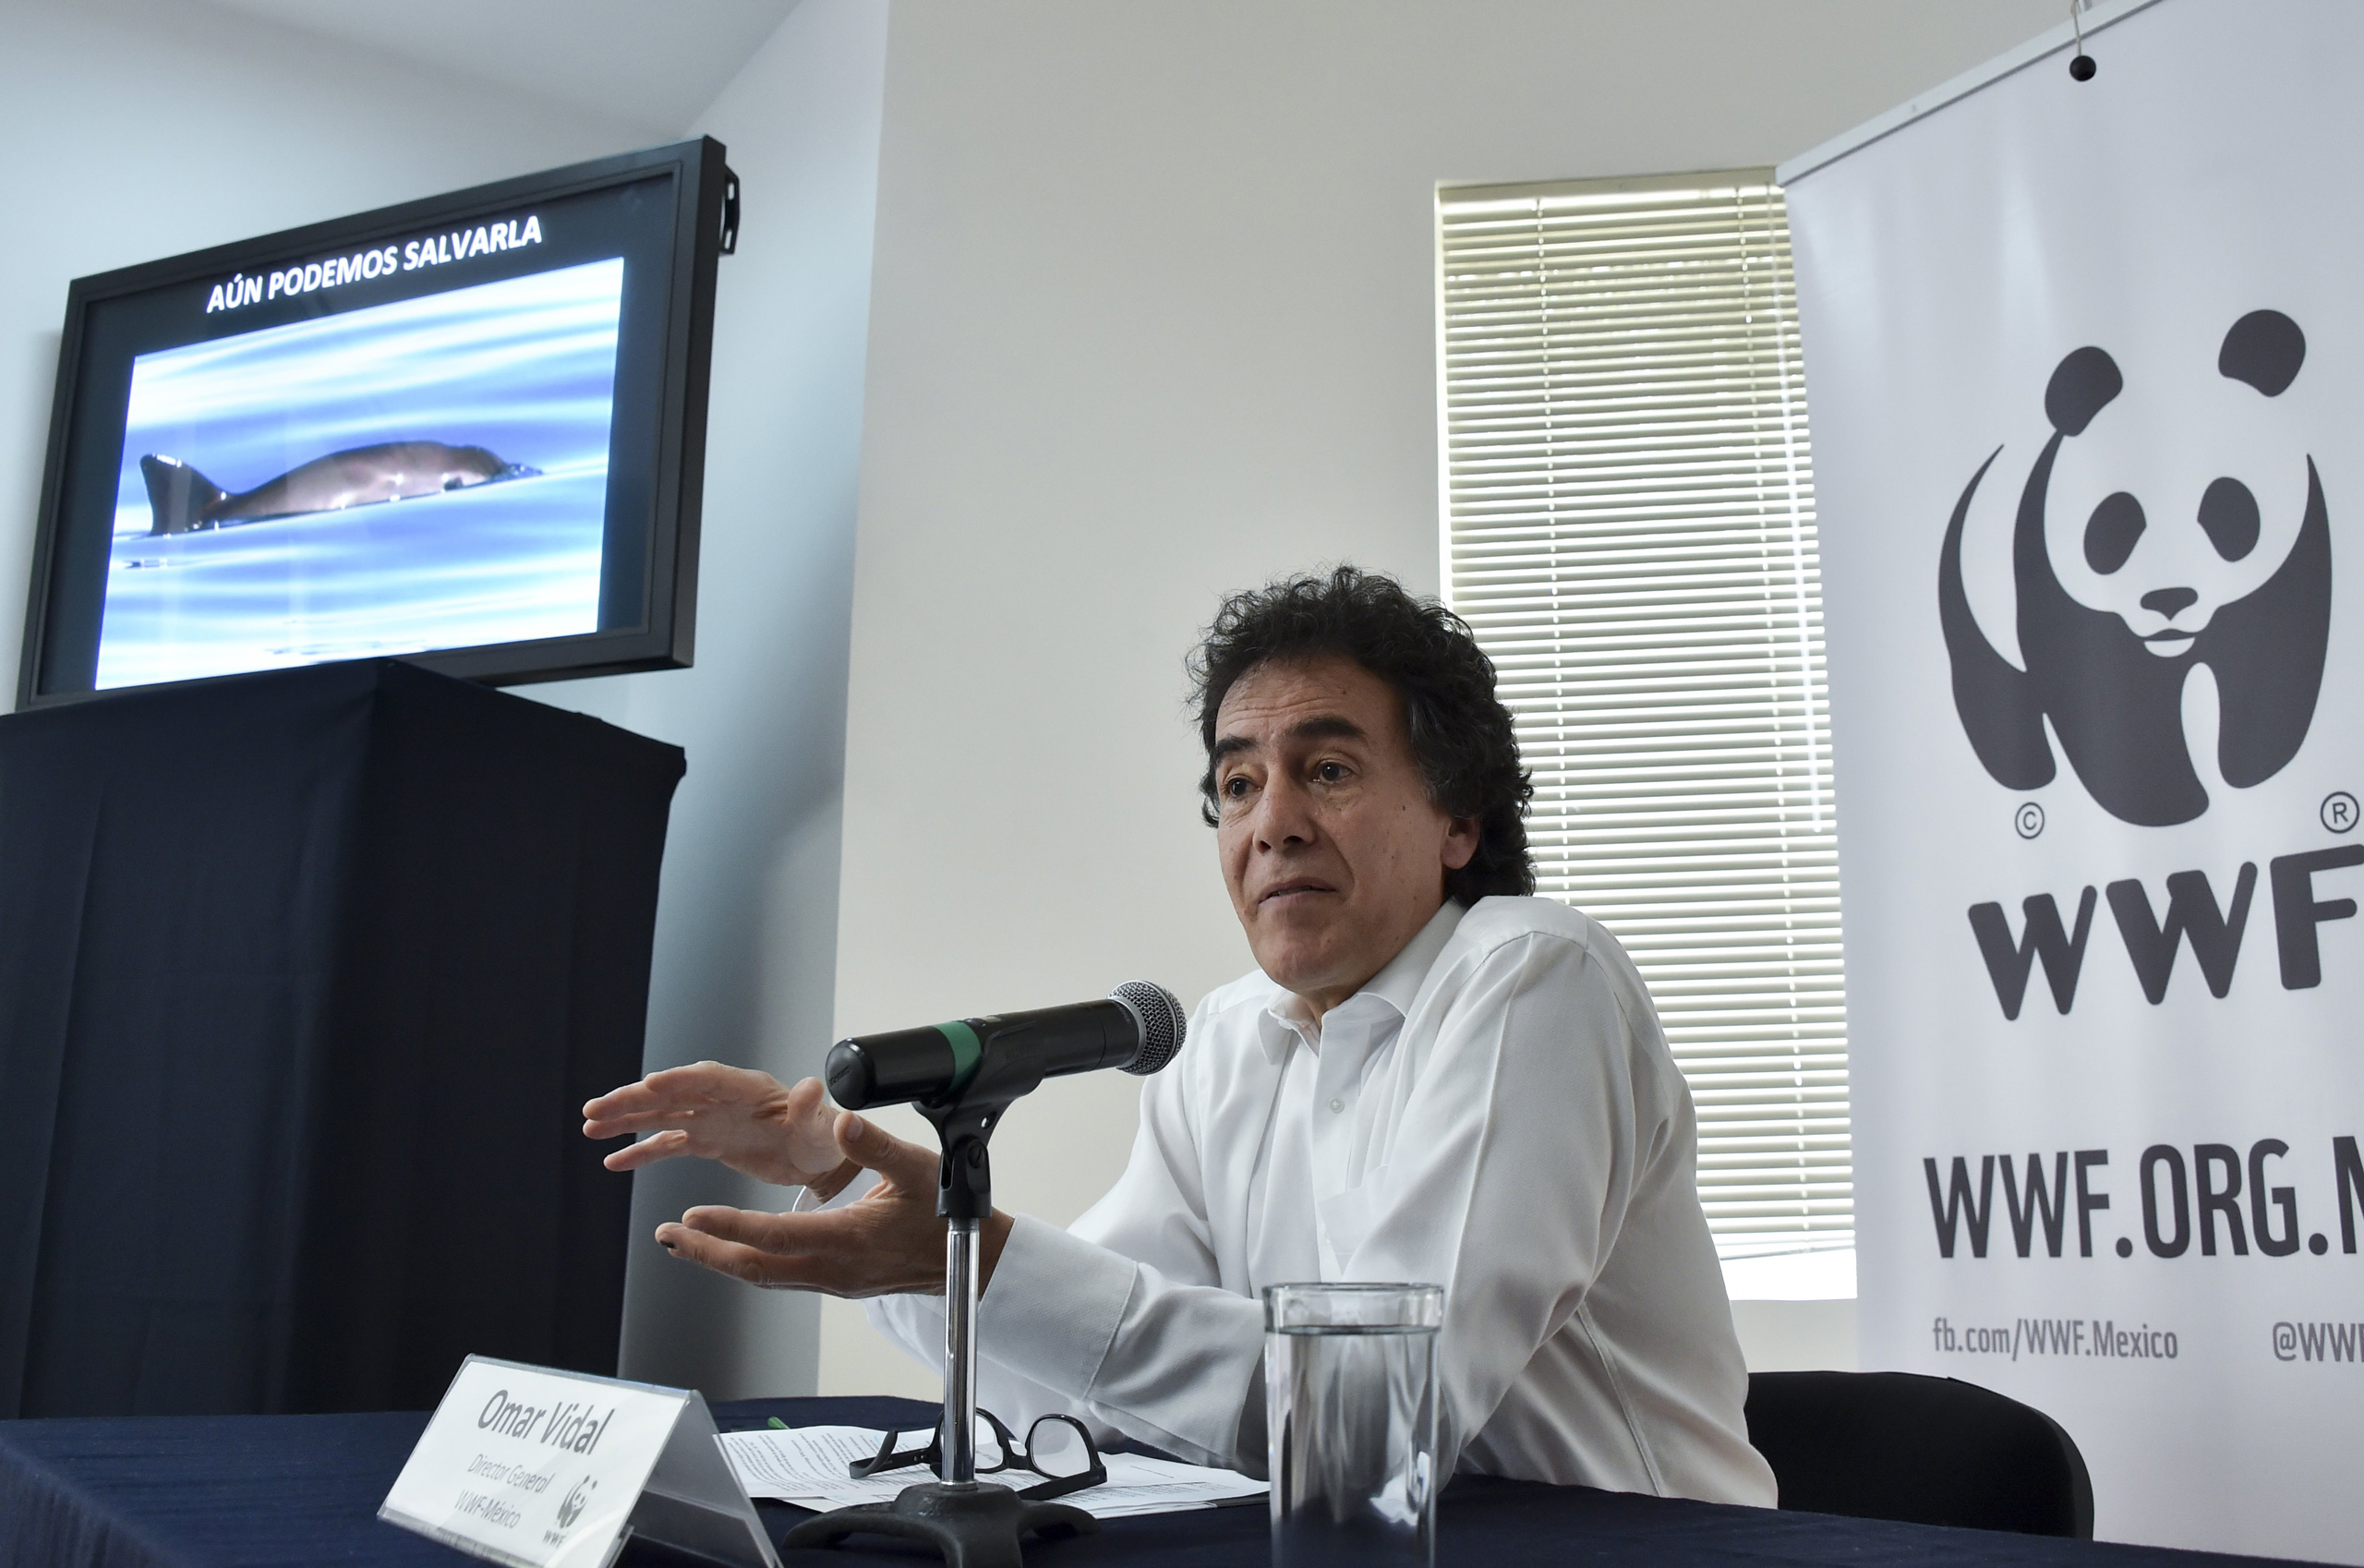 Mexico's General Director of World Wide Fund for Nature (WWF) Omar Vidal speaks during a press conference next to the image of a  vaquita marina  (Phocoena sinus) on a screen, in Mexico City on May 16, 2016.